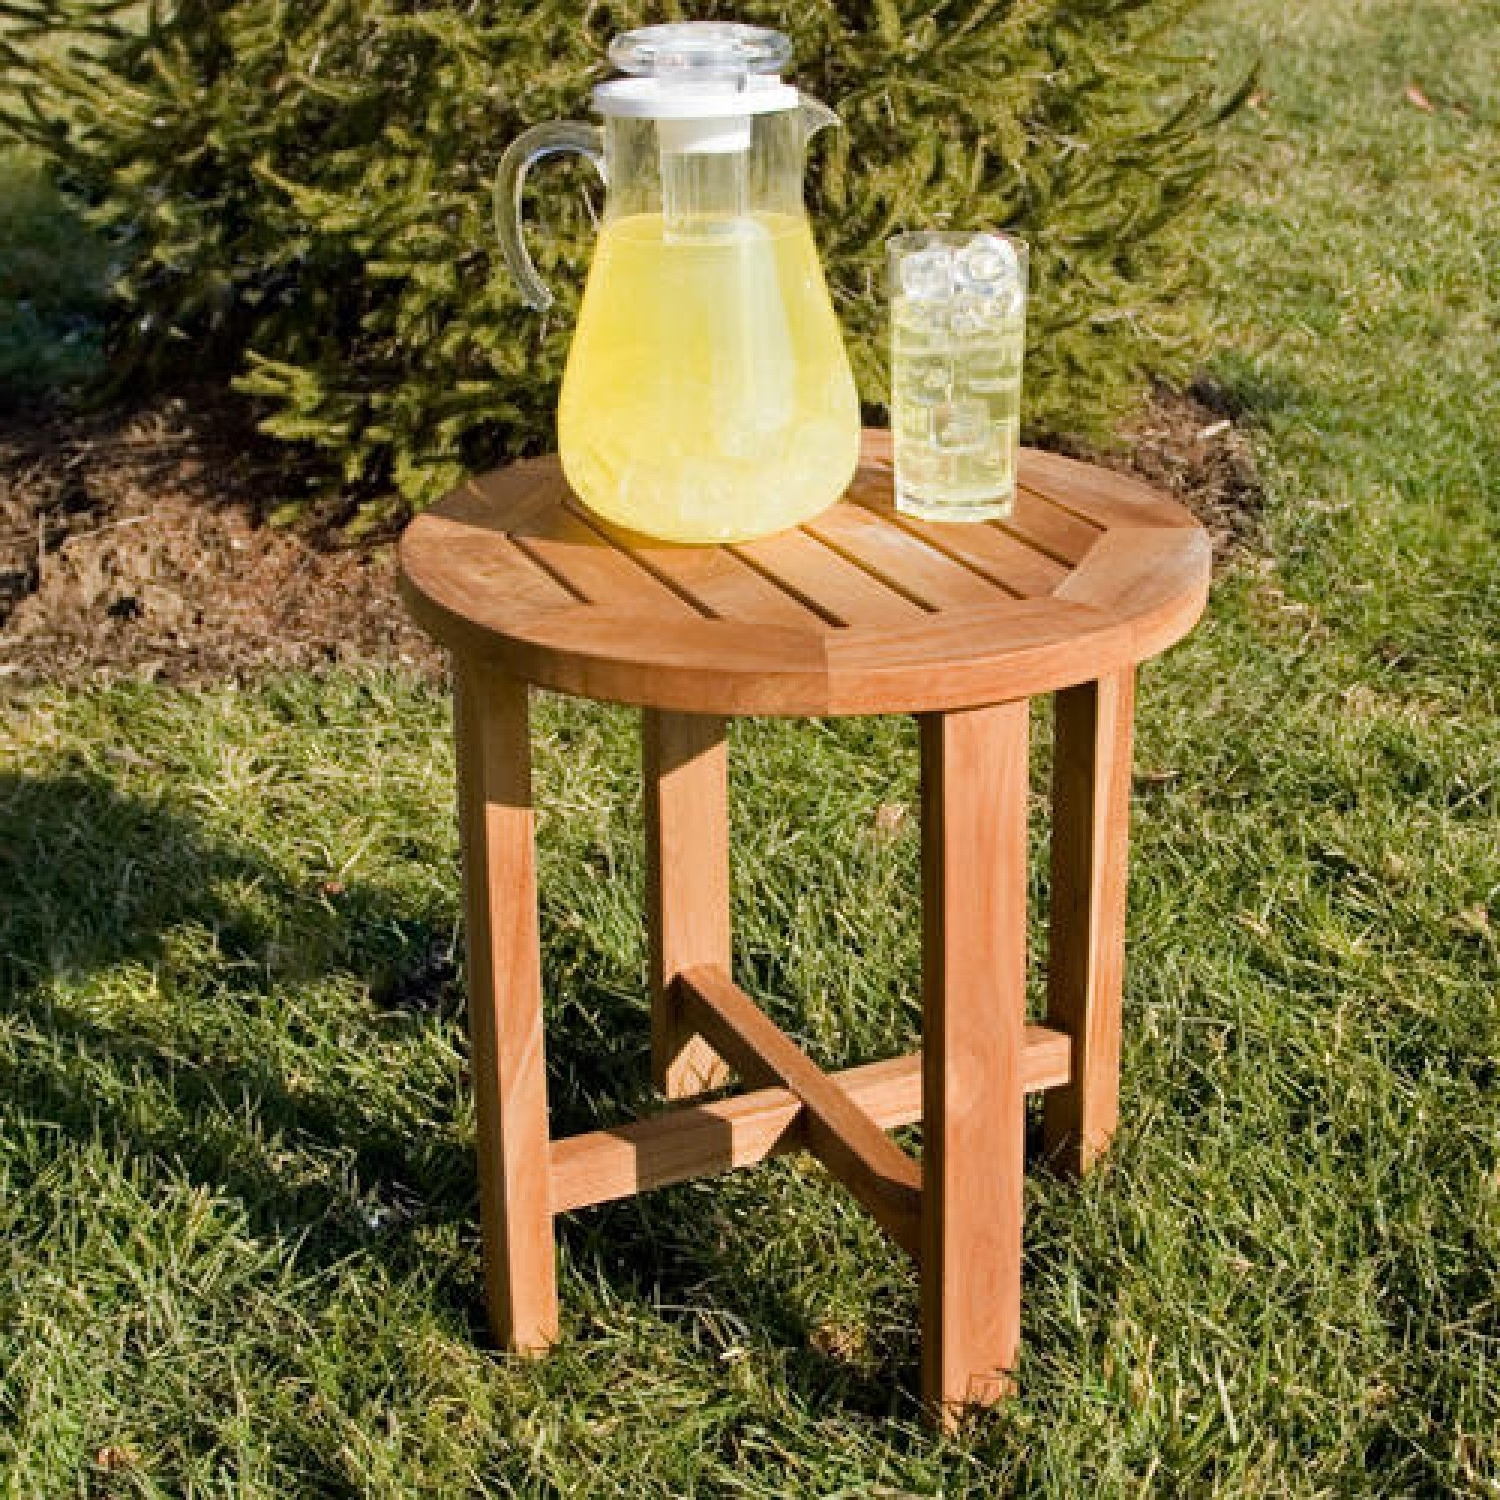 Tall Teak Coffee Table Outdoor — New Home Design : The Elegance Of Inside Famous Round Teak Coffee Tables (View 12 of 20)